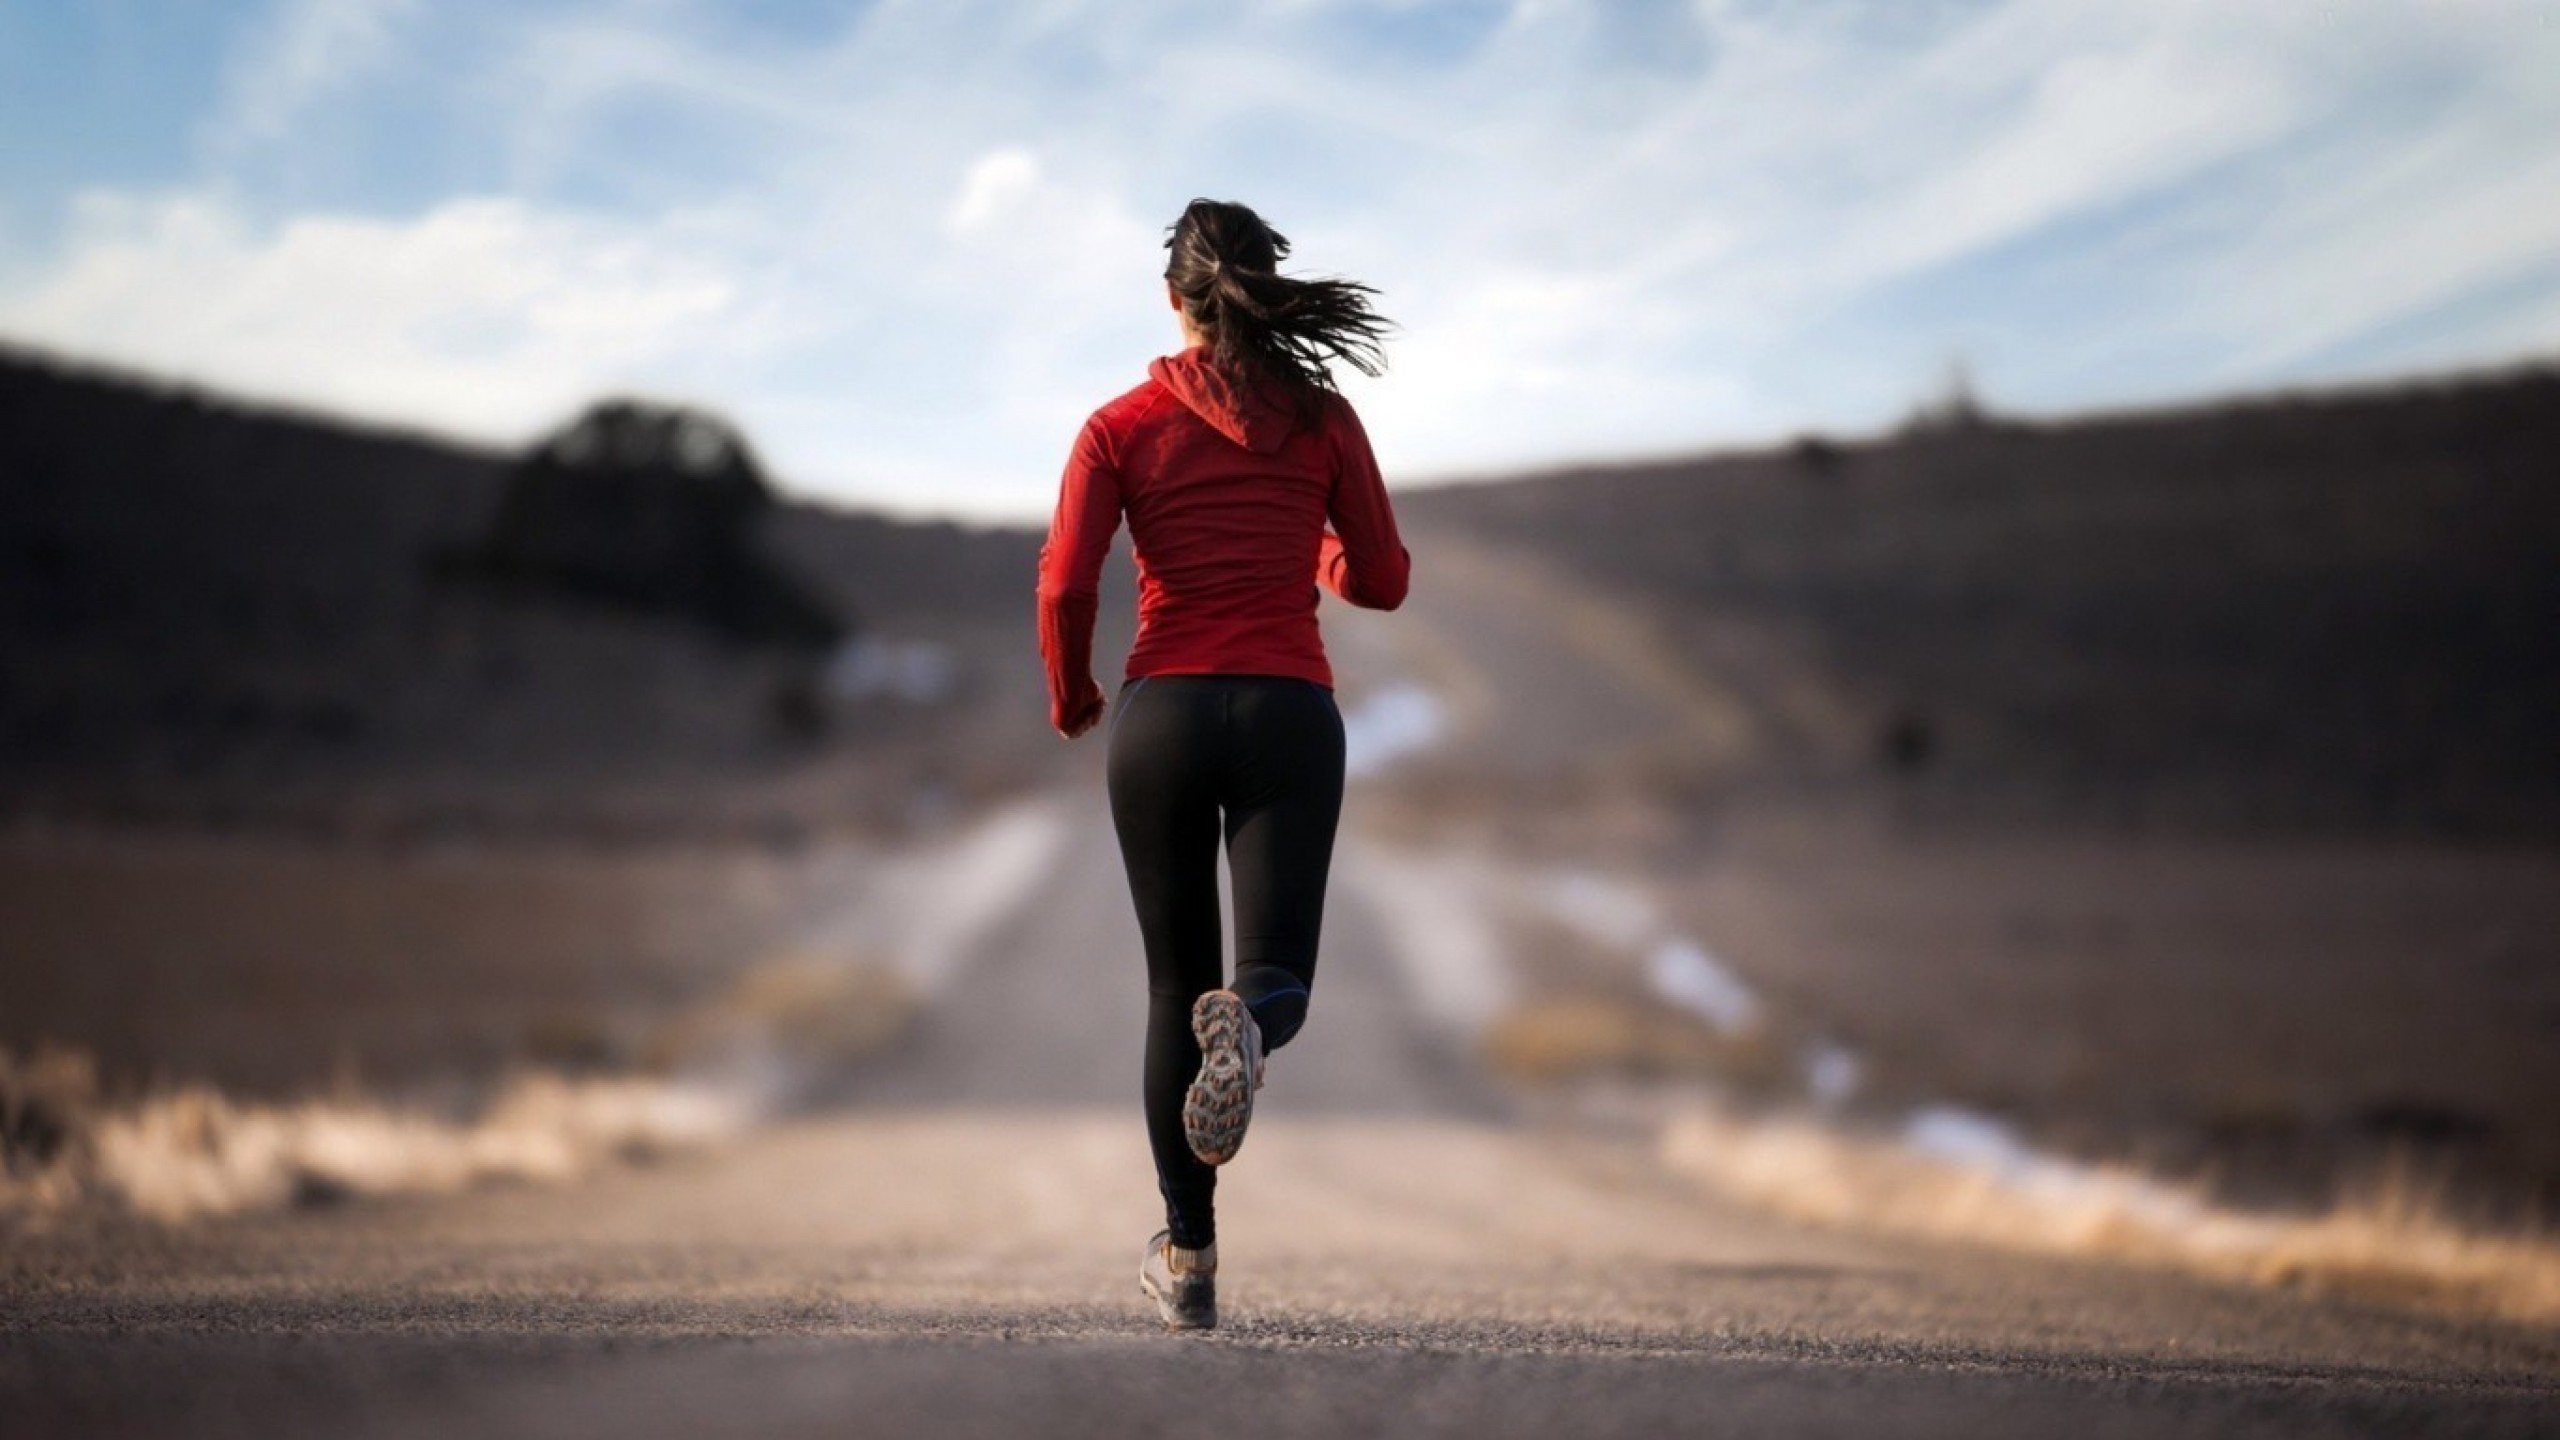 Girl Jogging Full Hd Wallpaper Download Jogging Photos Free A